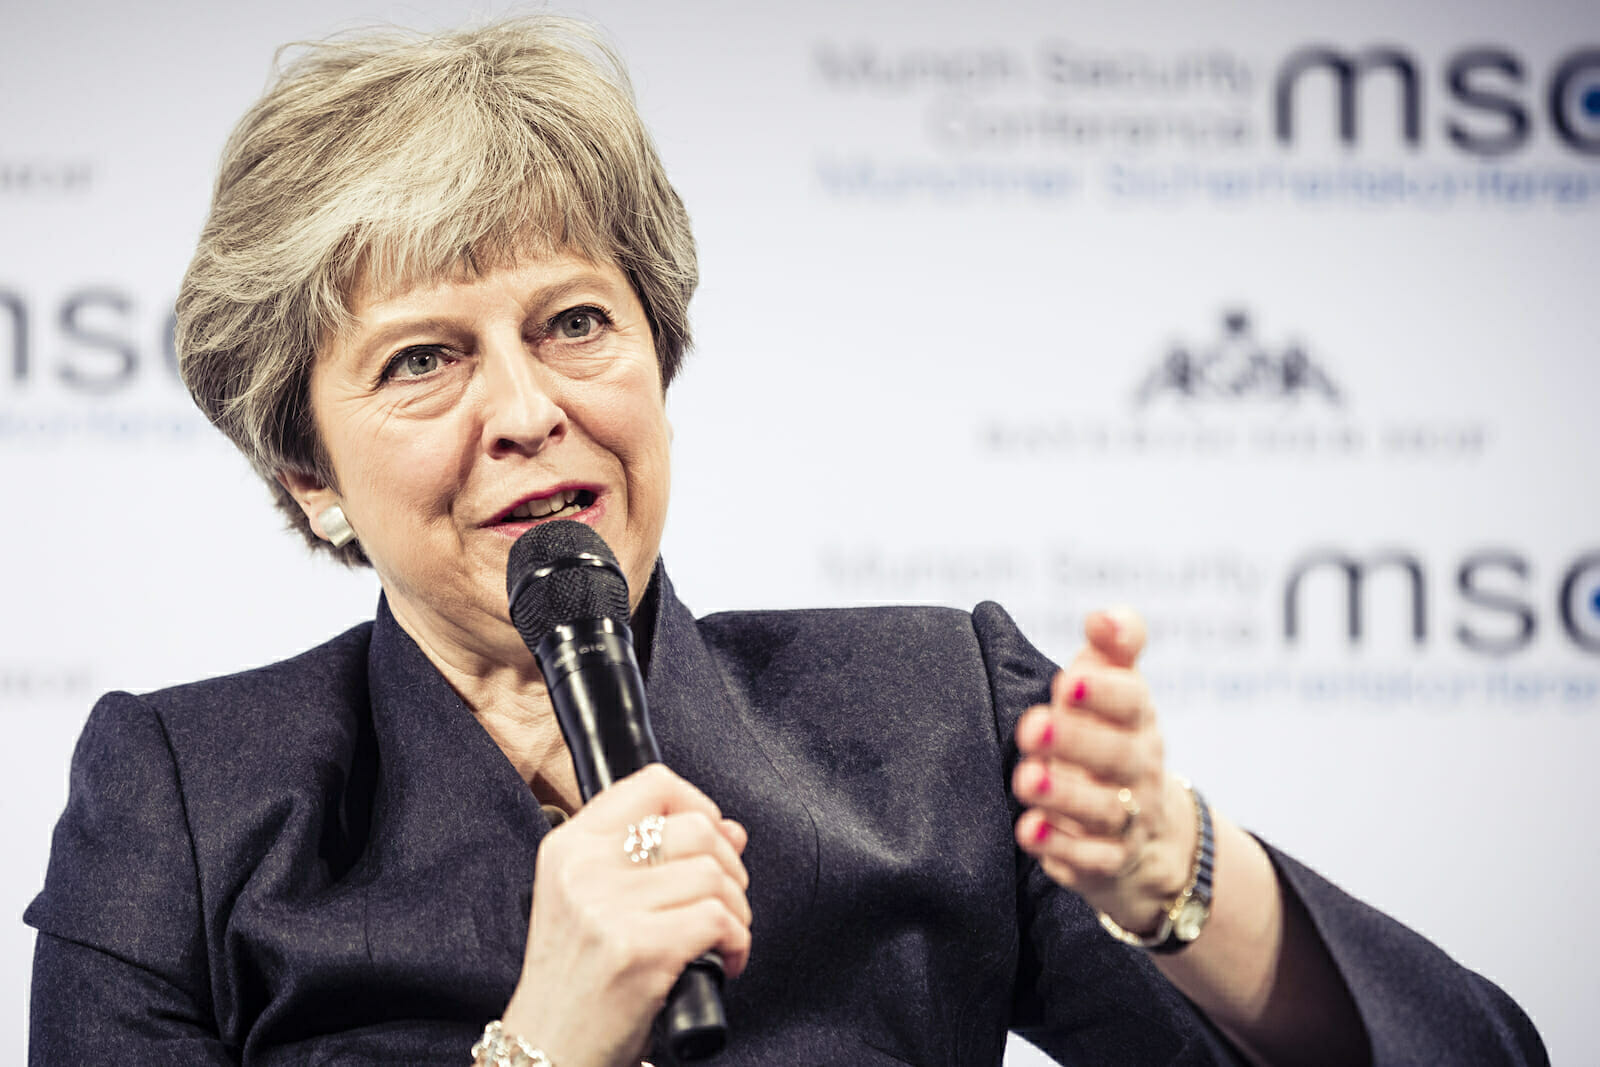 UK Prime Minister Theresa May speaking at the Munich Security conference